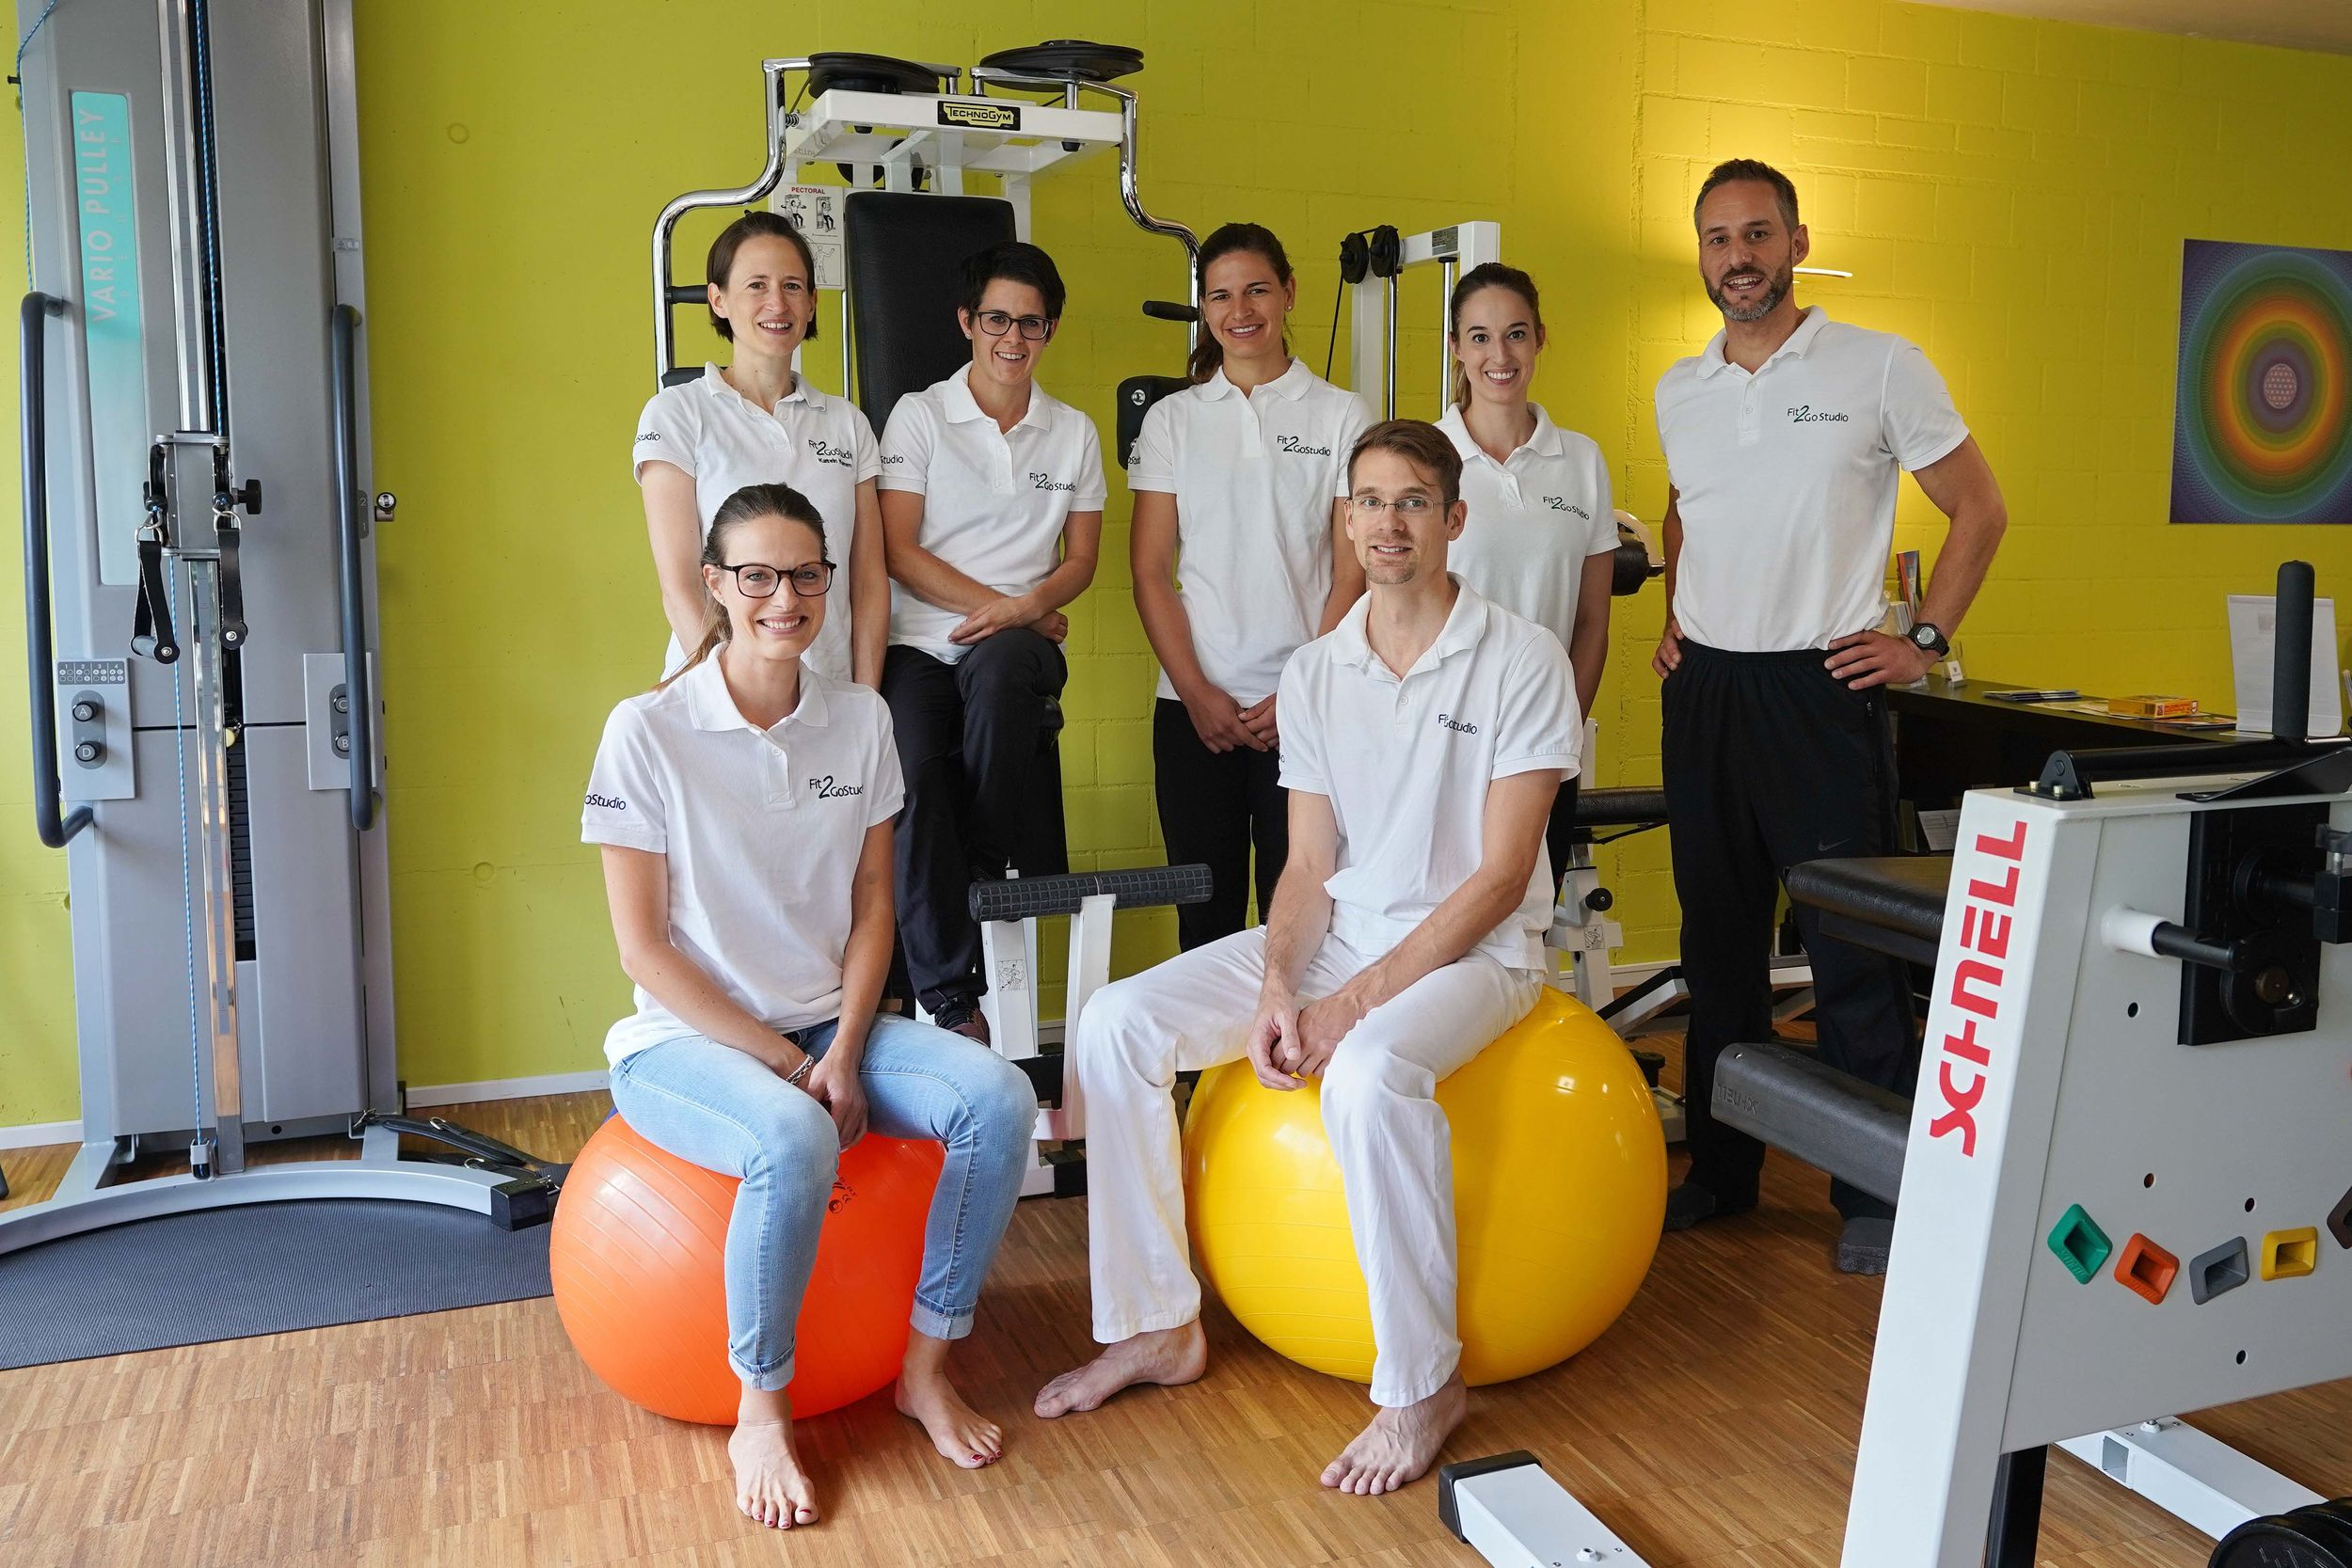 Das Team - Fit2Go Center in Uster 2